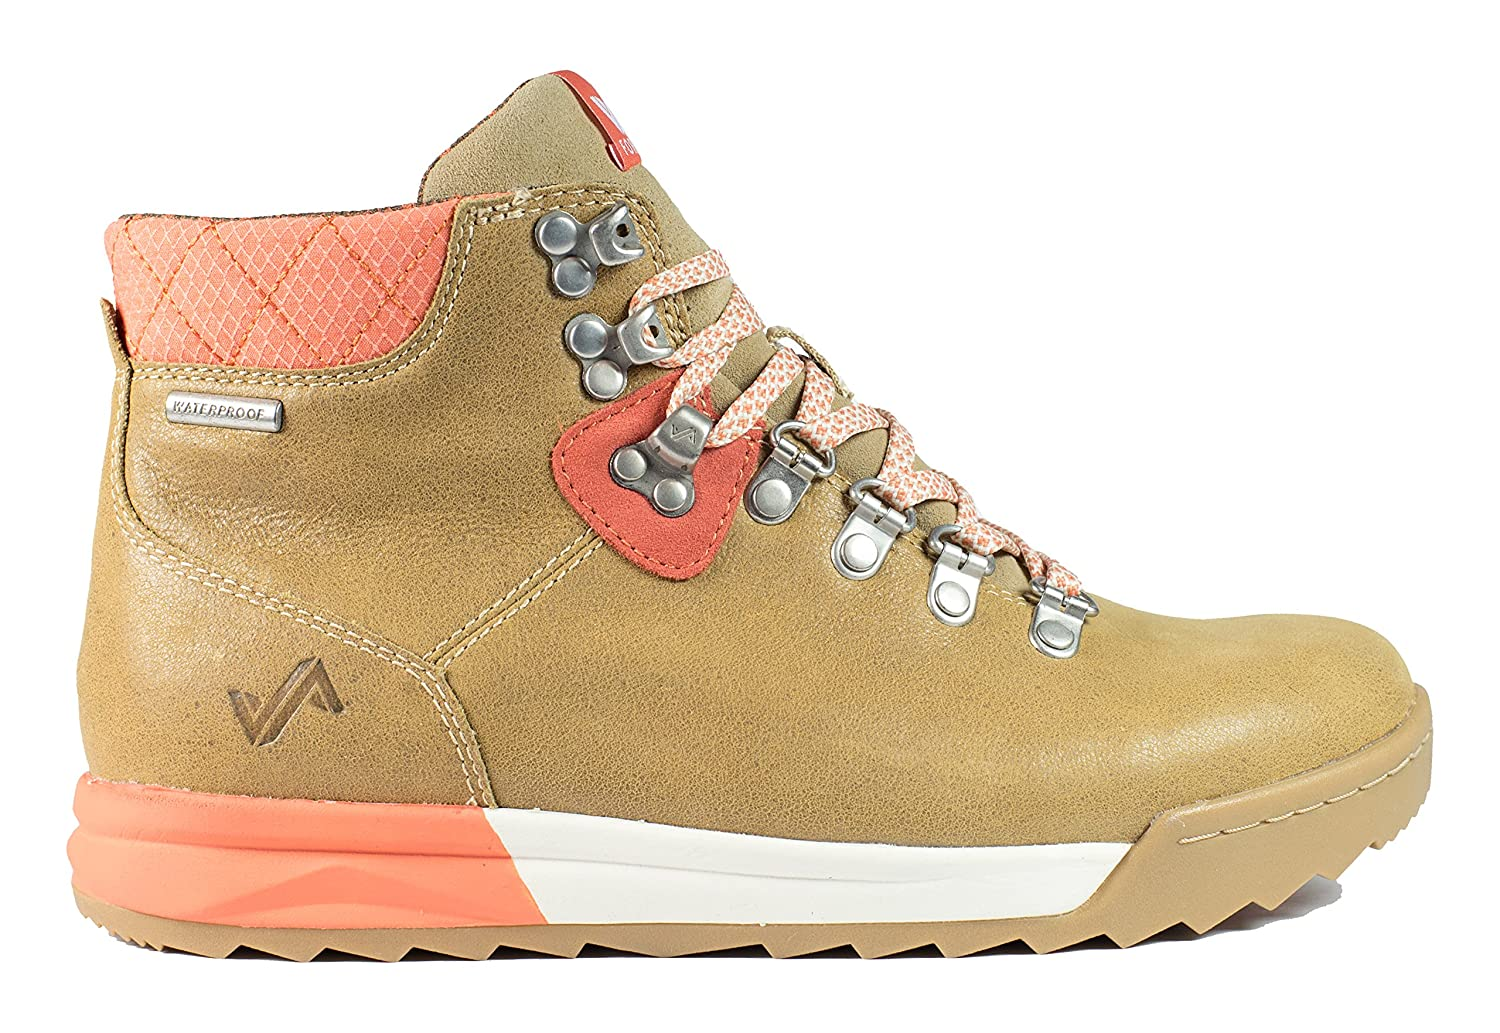 Forsake Patch - Women's Waterproof Premium Leather Hiking Boot B01NAX8KX8 8 M US|Sand/Coral